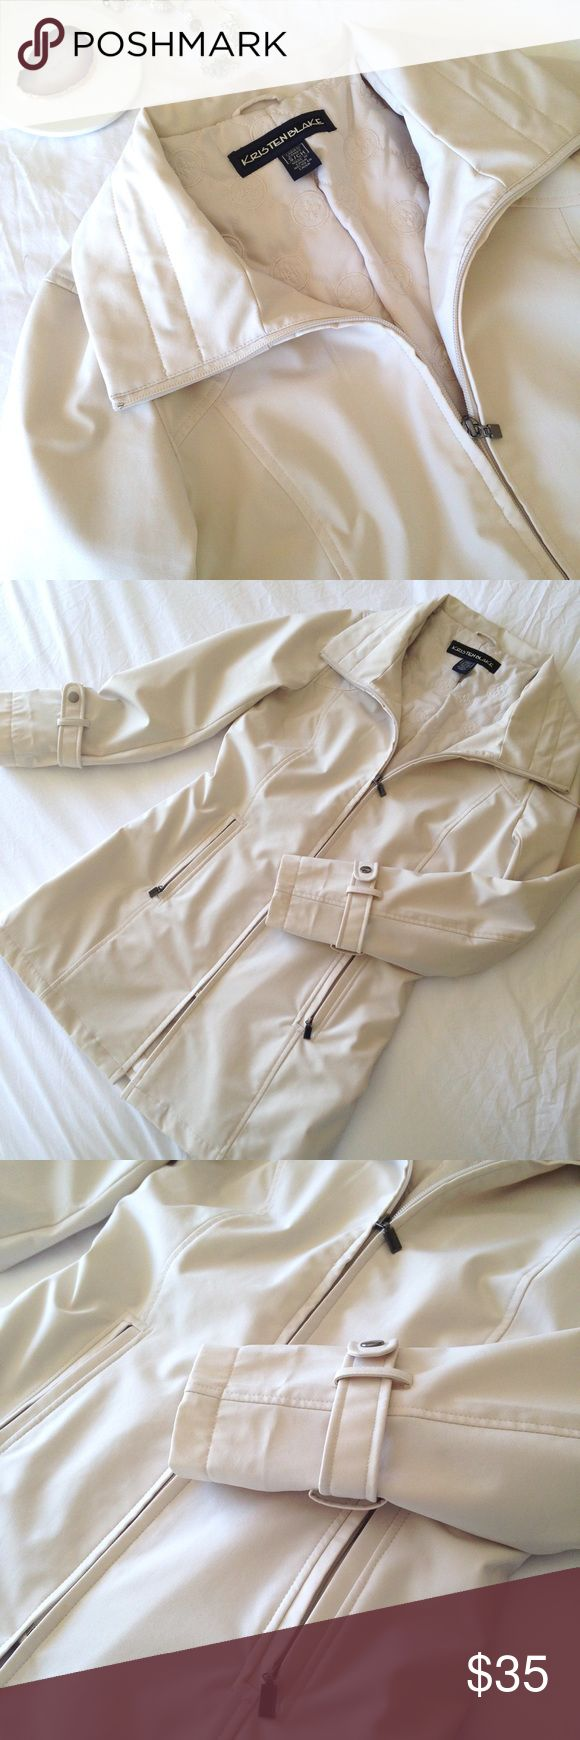 Kristin Blake Ivory coat Lightweight, water-resistant coat perfect for fall/spring. Zippered pockets, cinch collar, beautiful quilted lining. Size Small. Excellent condition. No flaws. Kristen Blake Jackets & Coats Trench Coats